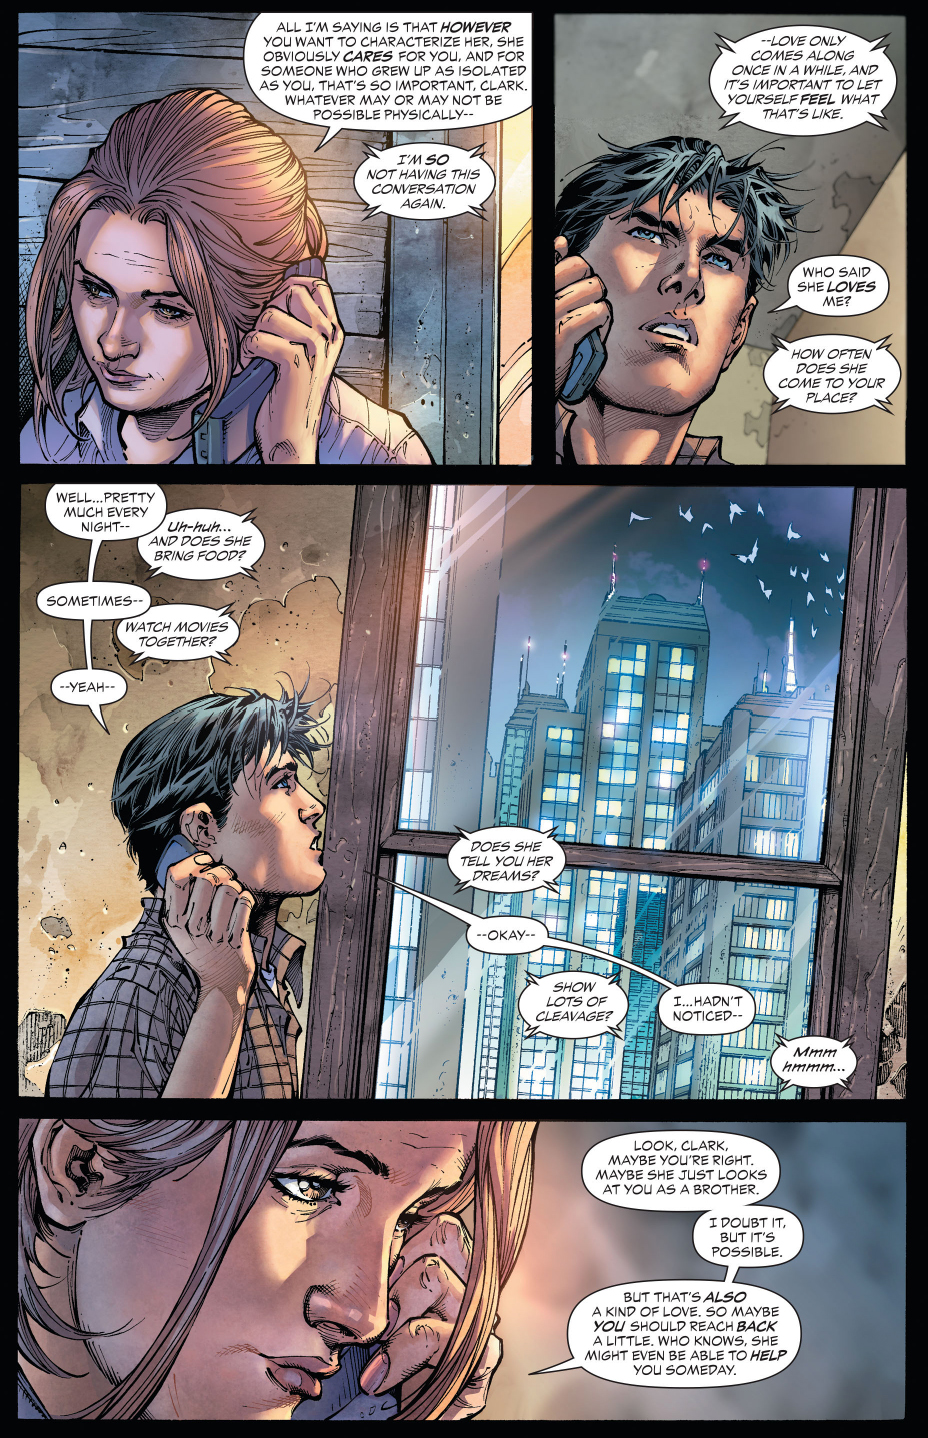 clark kent gets some motherly advice about girls